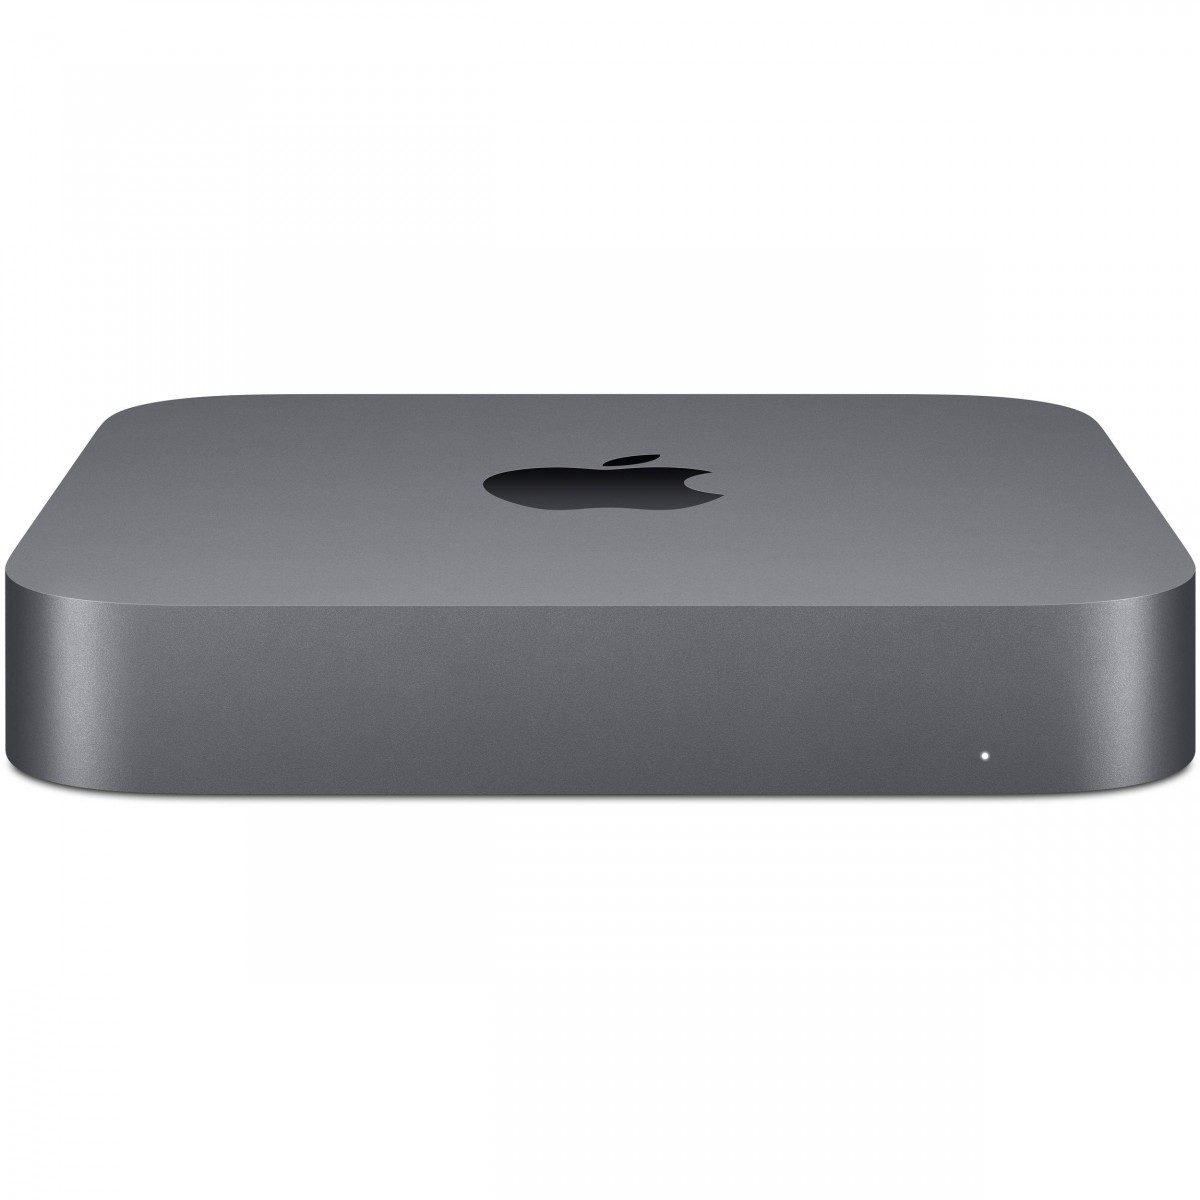 Apple Mac mini, MRTR2CZ/A